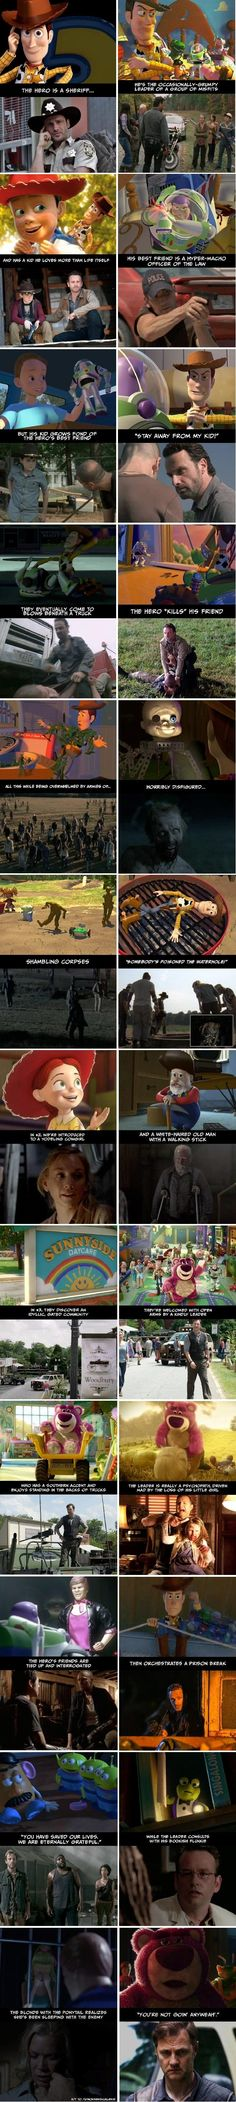 "Undeniable Proof That ""The Walking Dead"" And ""Toy Story"" Have The Exact Same Plot - qm stories & news."